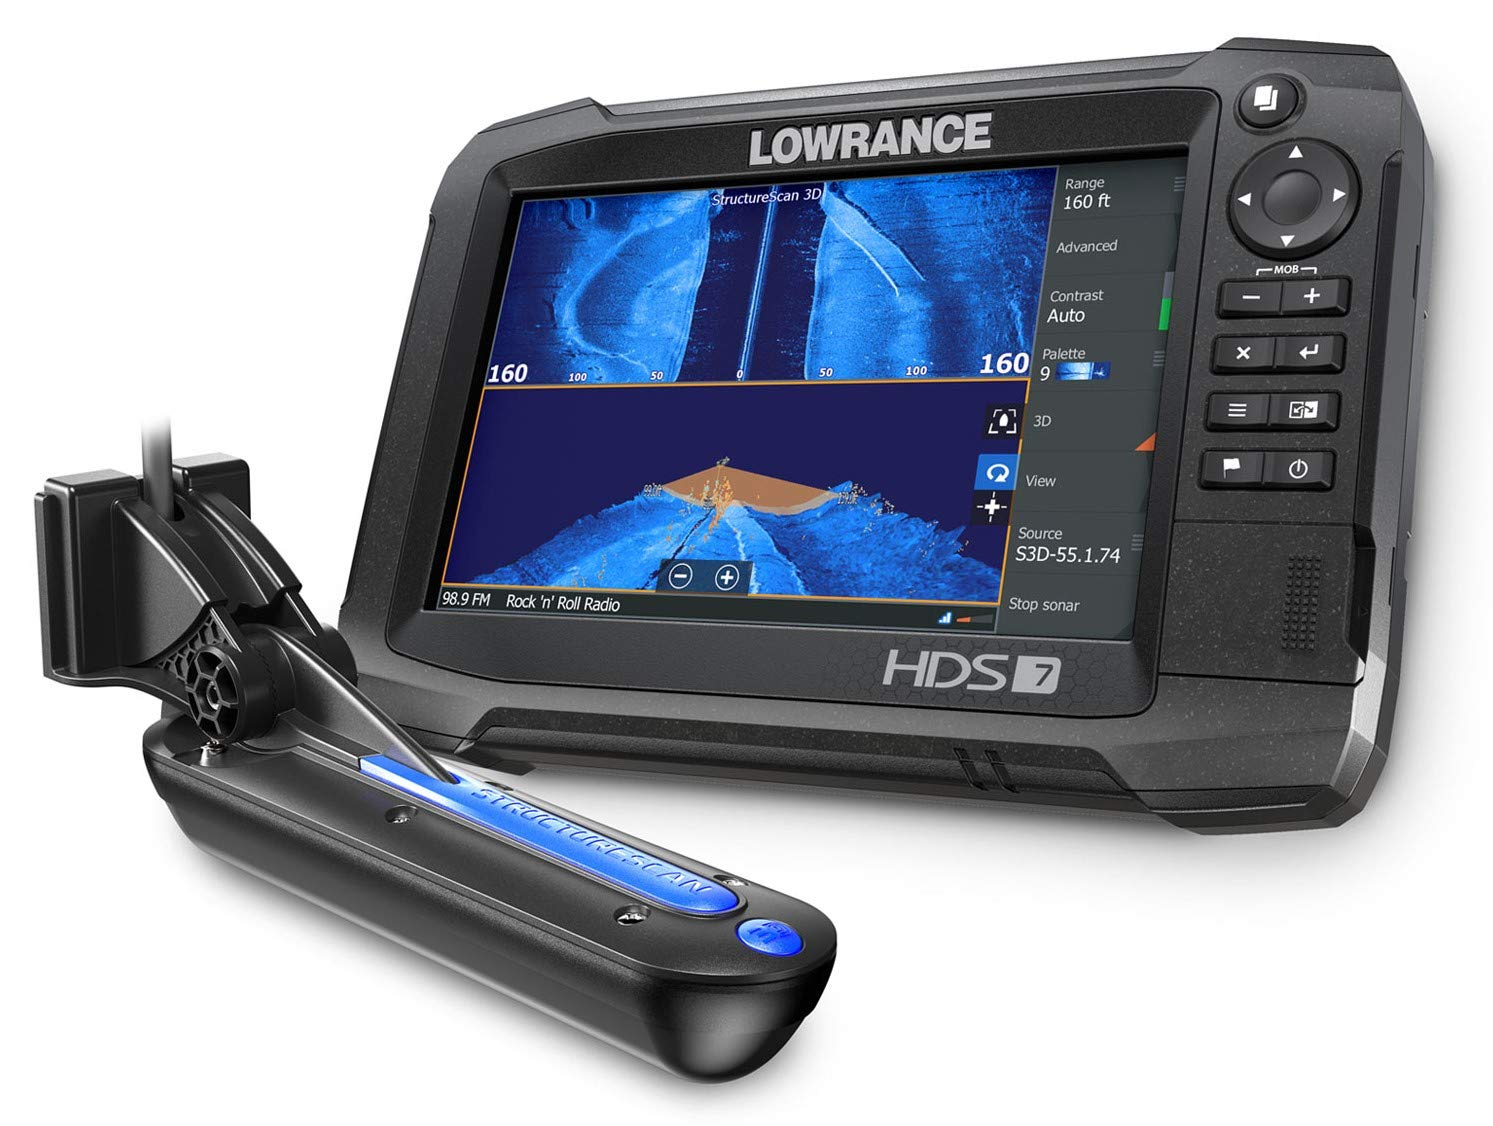 HDS-7 Carbon - 7-inch Fish Finder with TotalScan Transducer and C-MAP US Enhanced Basemap Installed by Lowrance